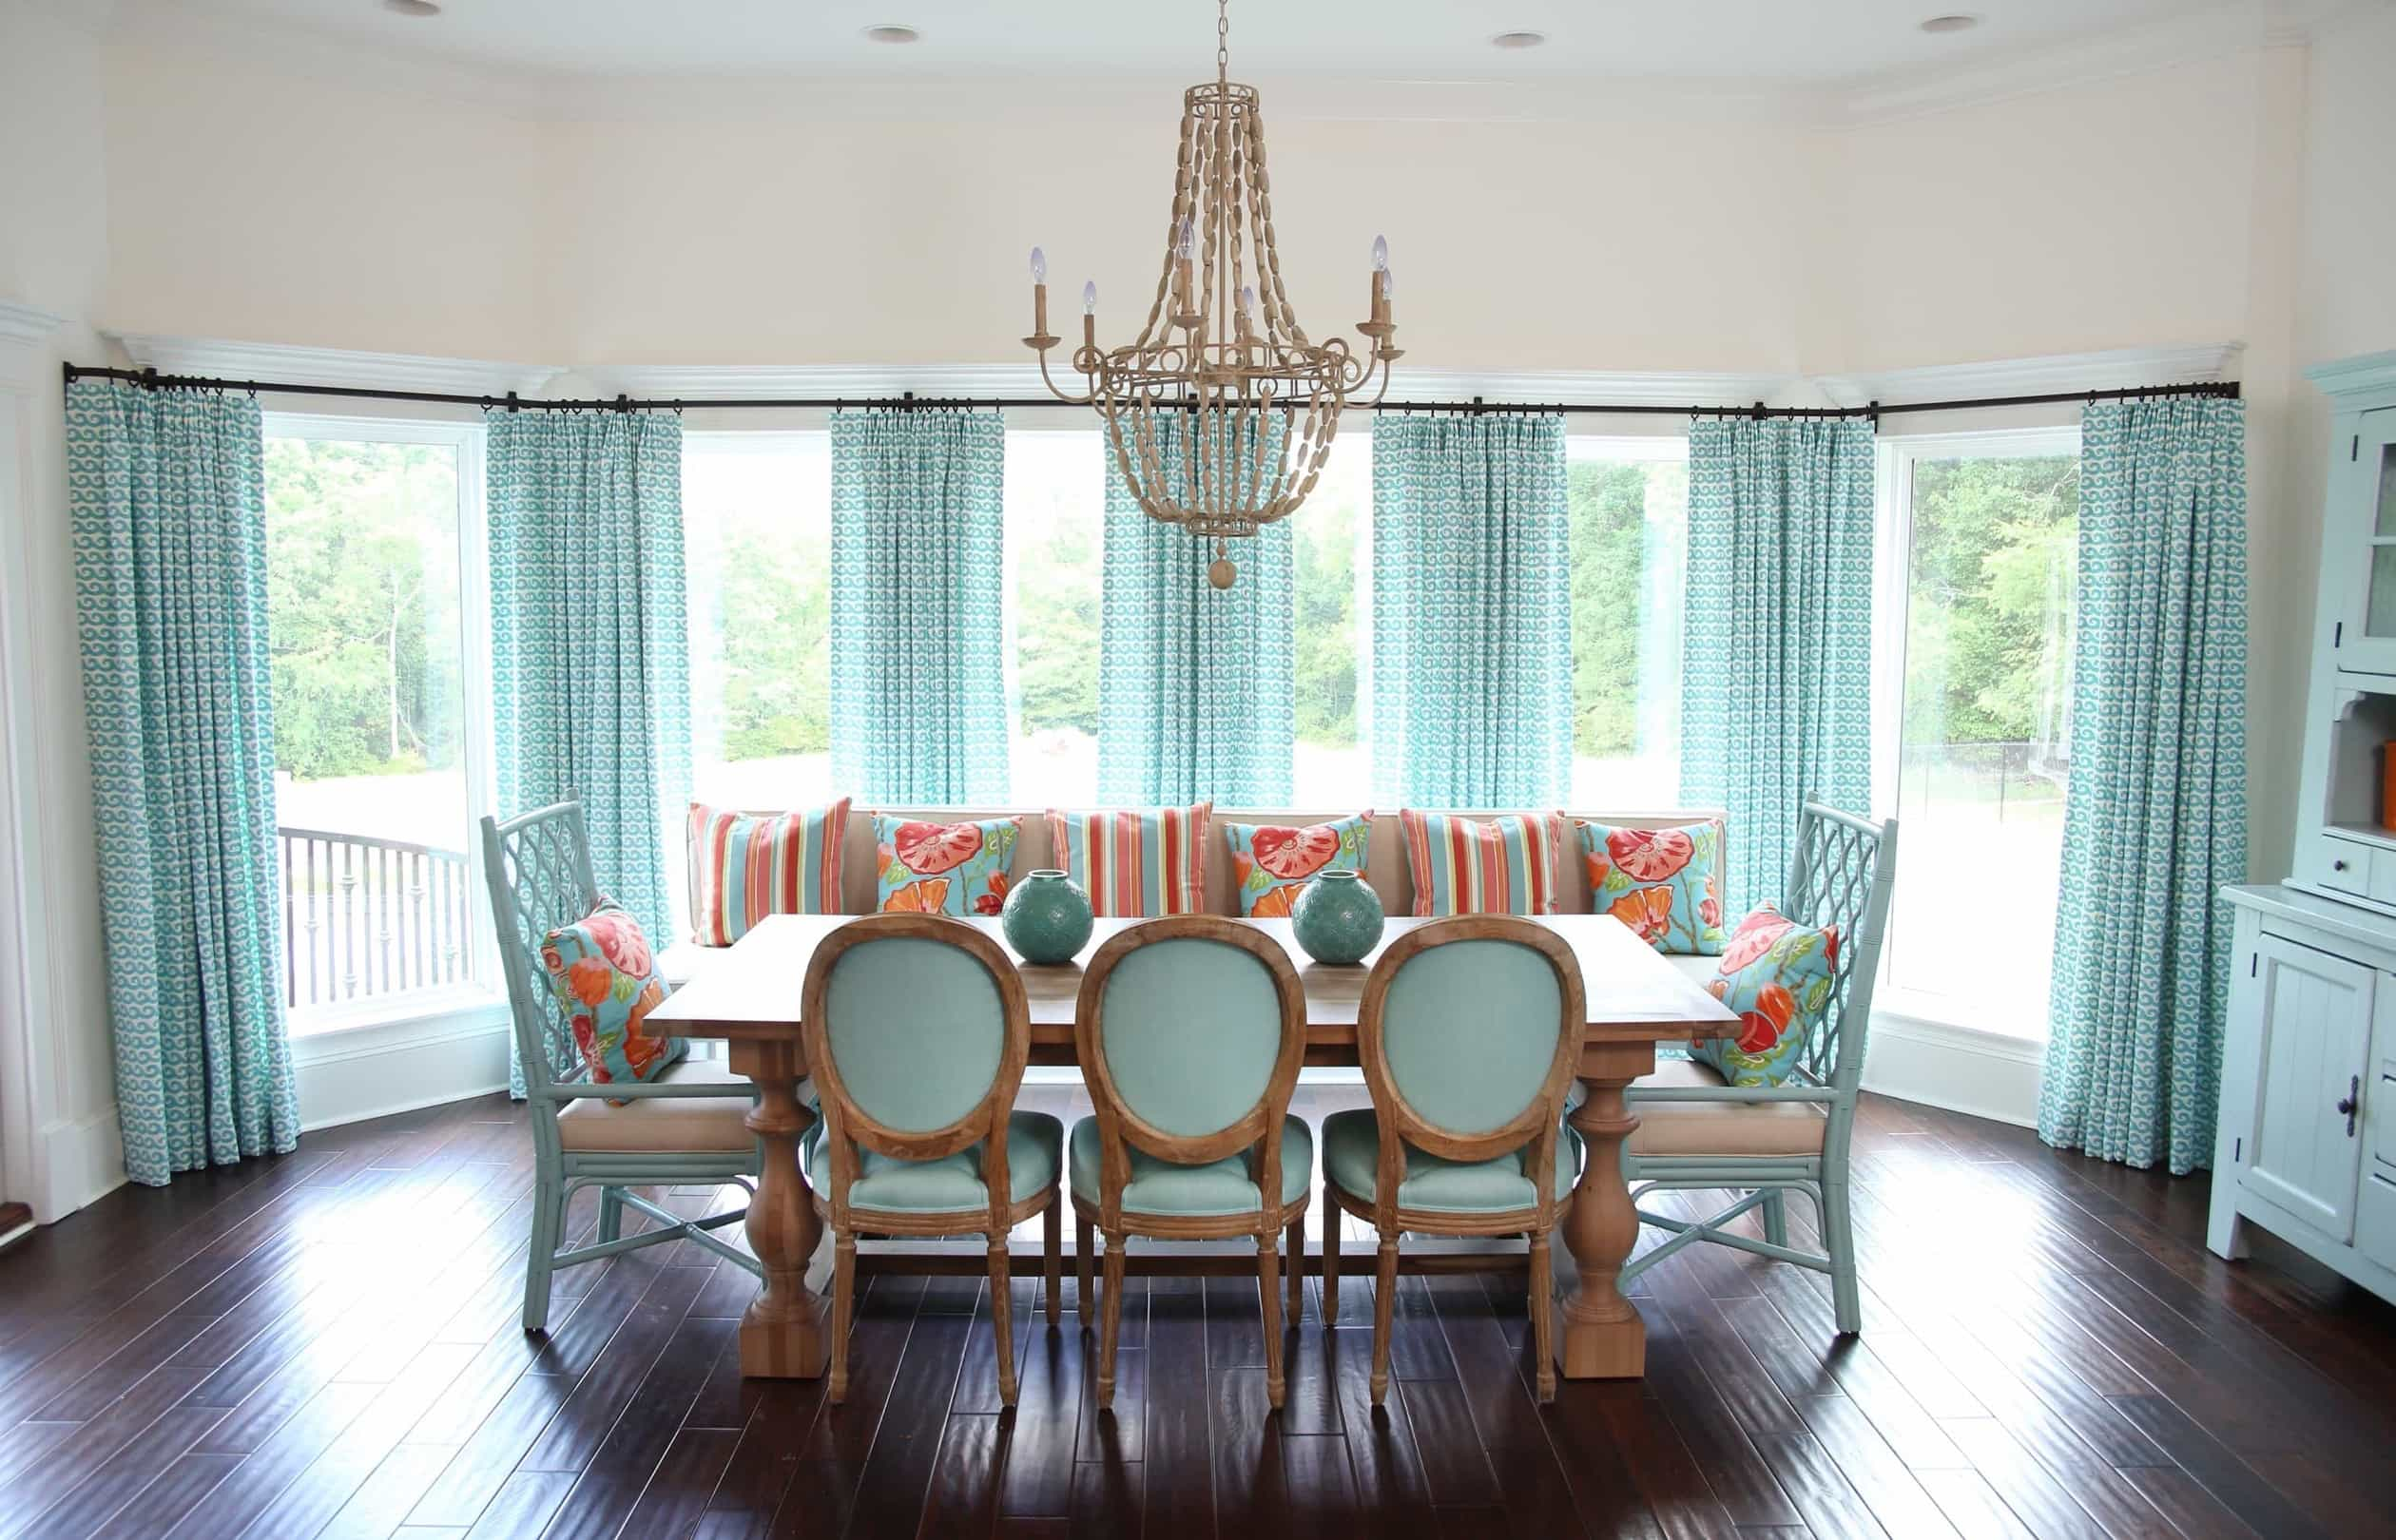 Featured Image of Coastal Dining Room With Aqua Decor And Ornate Chandelier